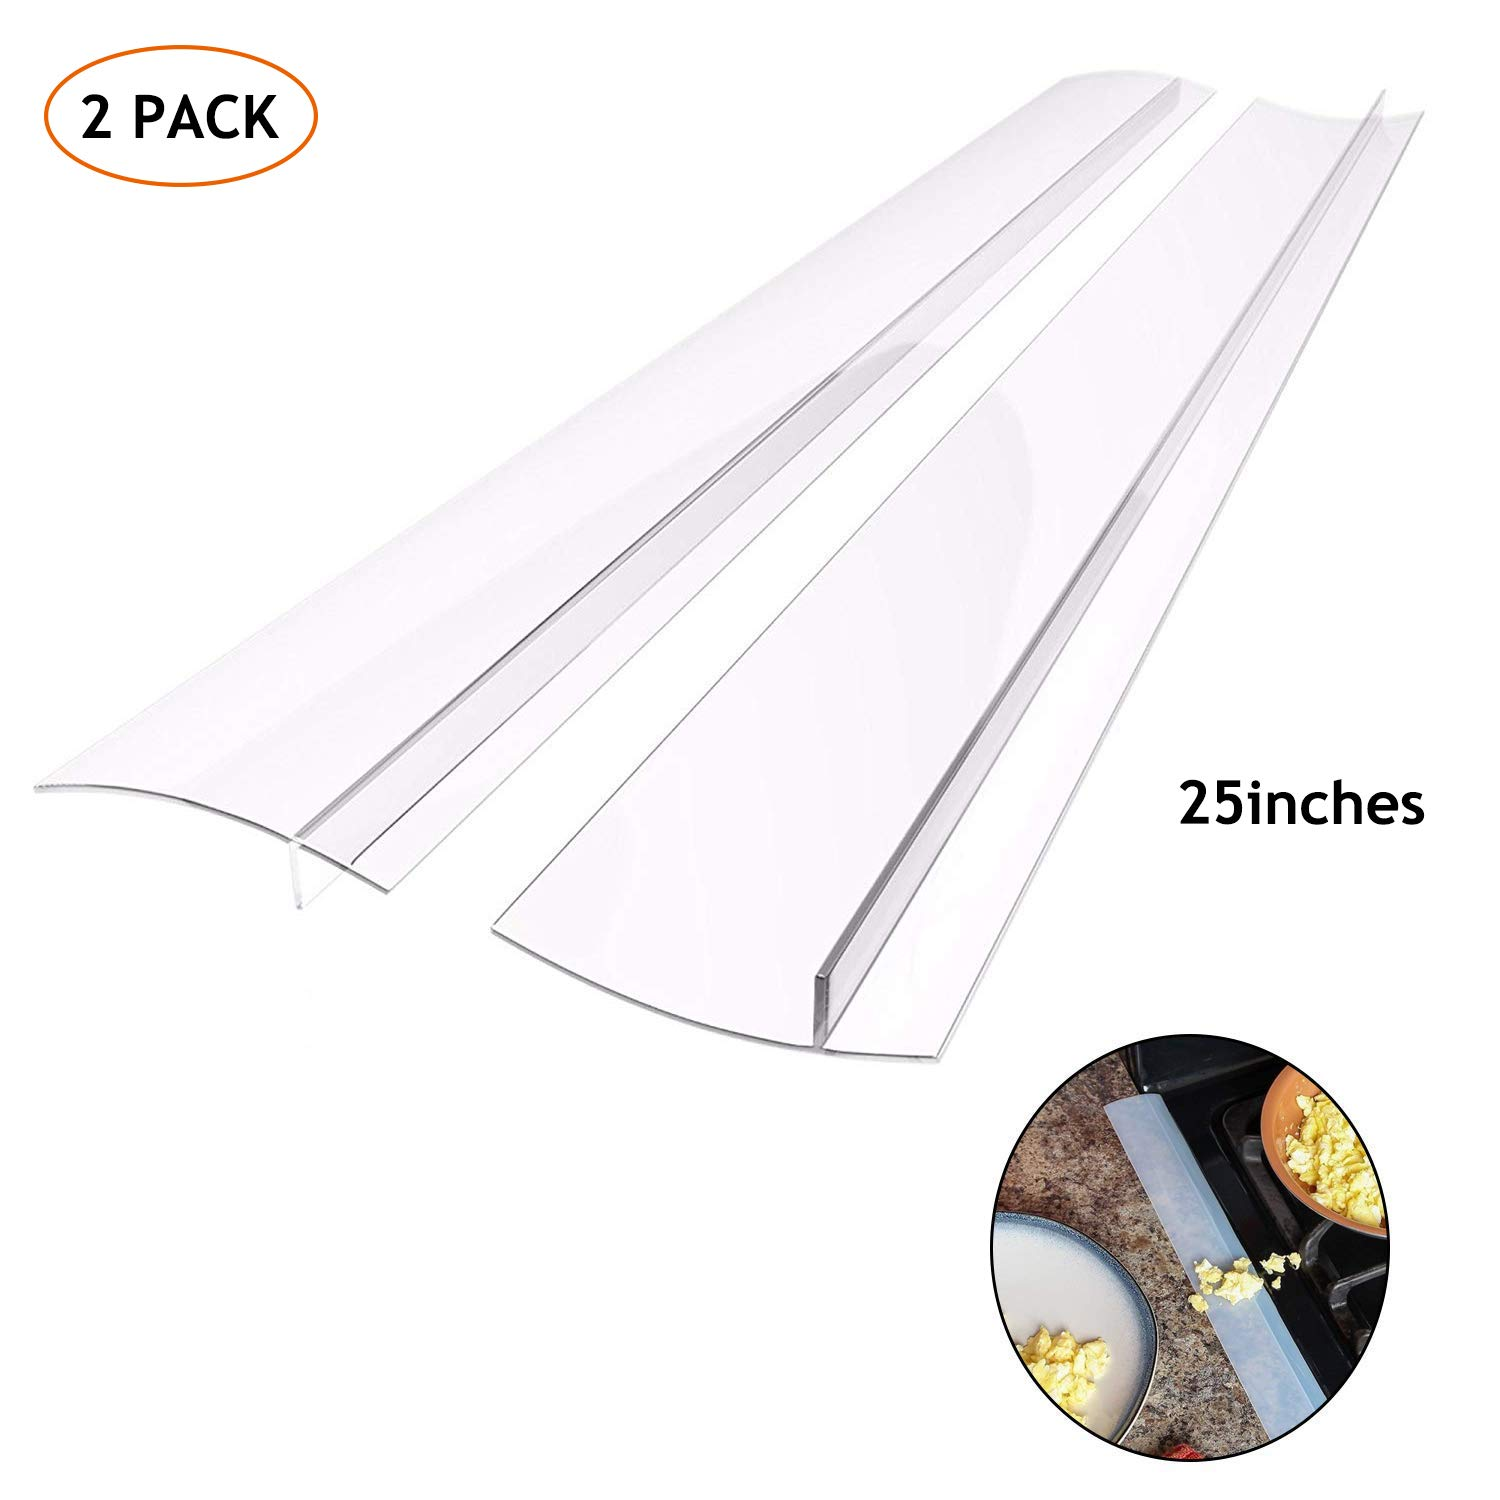 Silicone Kitchen Stove Counter Gap Cover Long & Wide Gap Filler (2 Pack) Seals Spills Between Counters, Stovetops, Washing Machines, Oven, Washer, Dryer | Heat-Resistant and Easy Clean,Semi Clear,25''